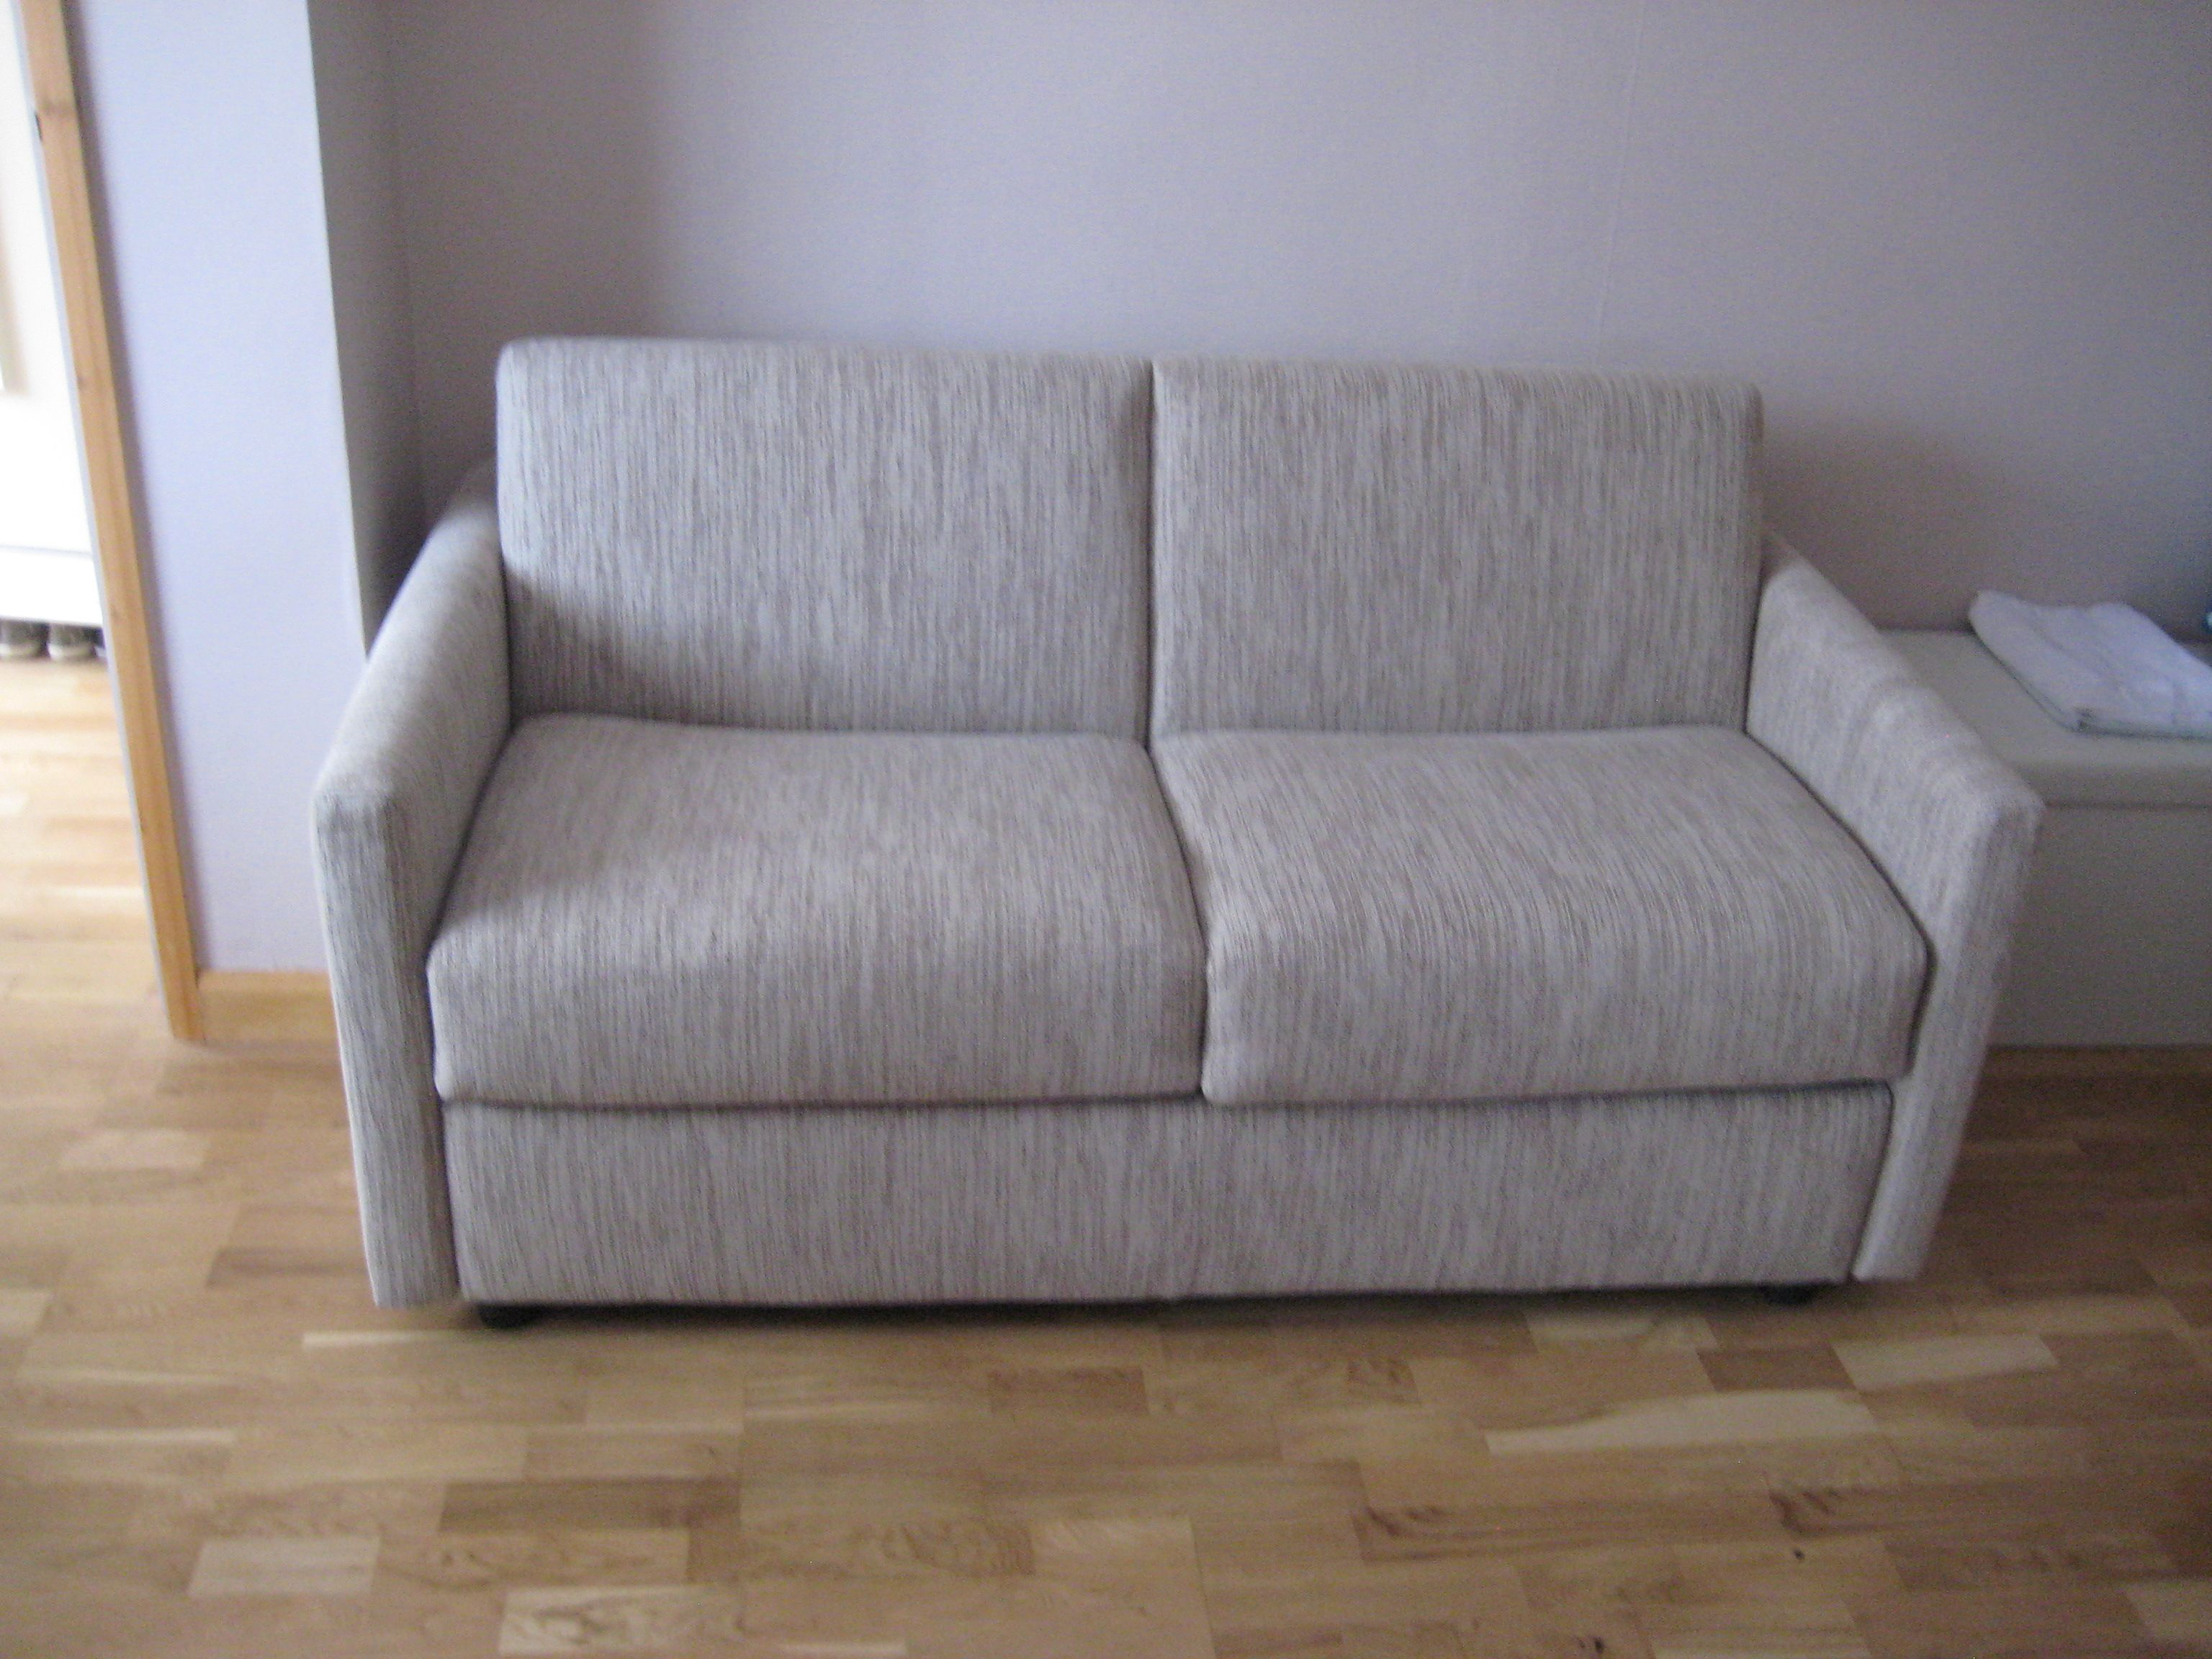 This Lario sofa bed 2 seater slim 8 cm arms measures a pact